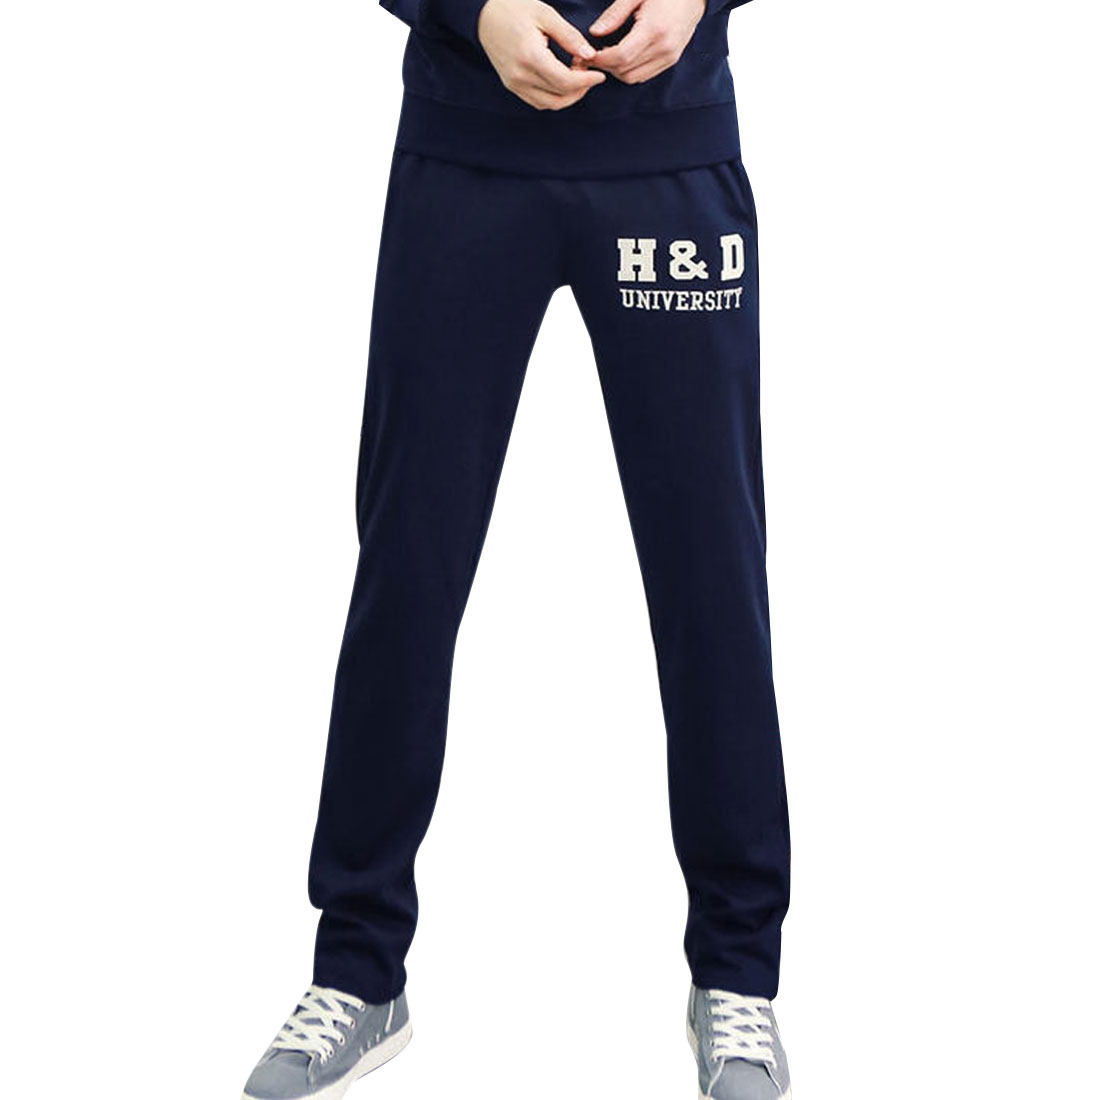 Man Stylish Elastic Waistband Letters Pattern Slim Fit Dark Blue Pants W28